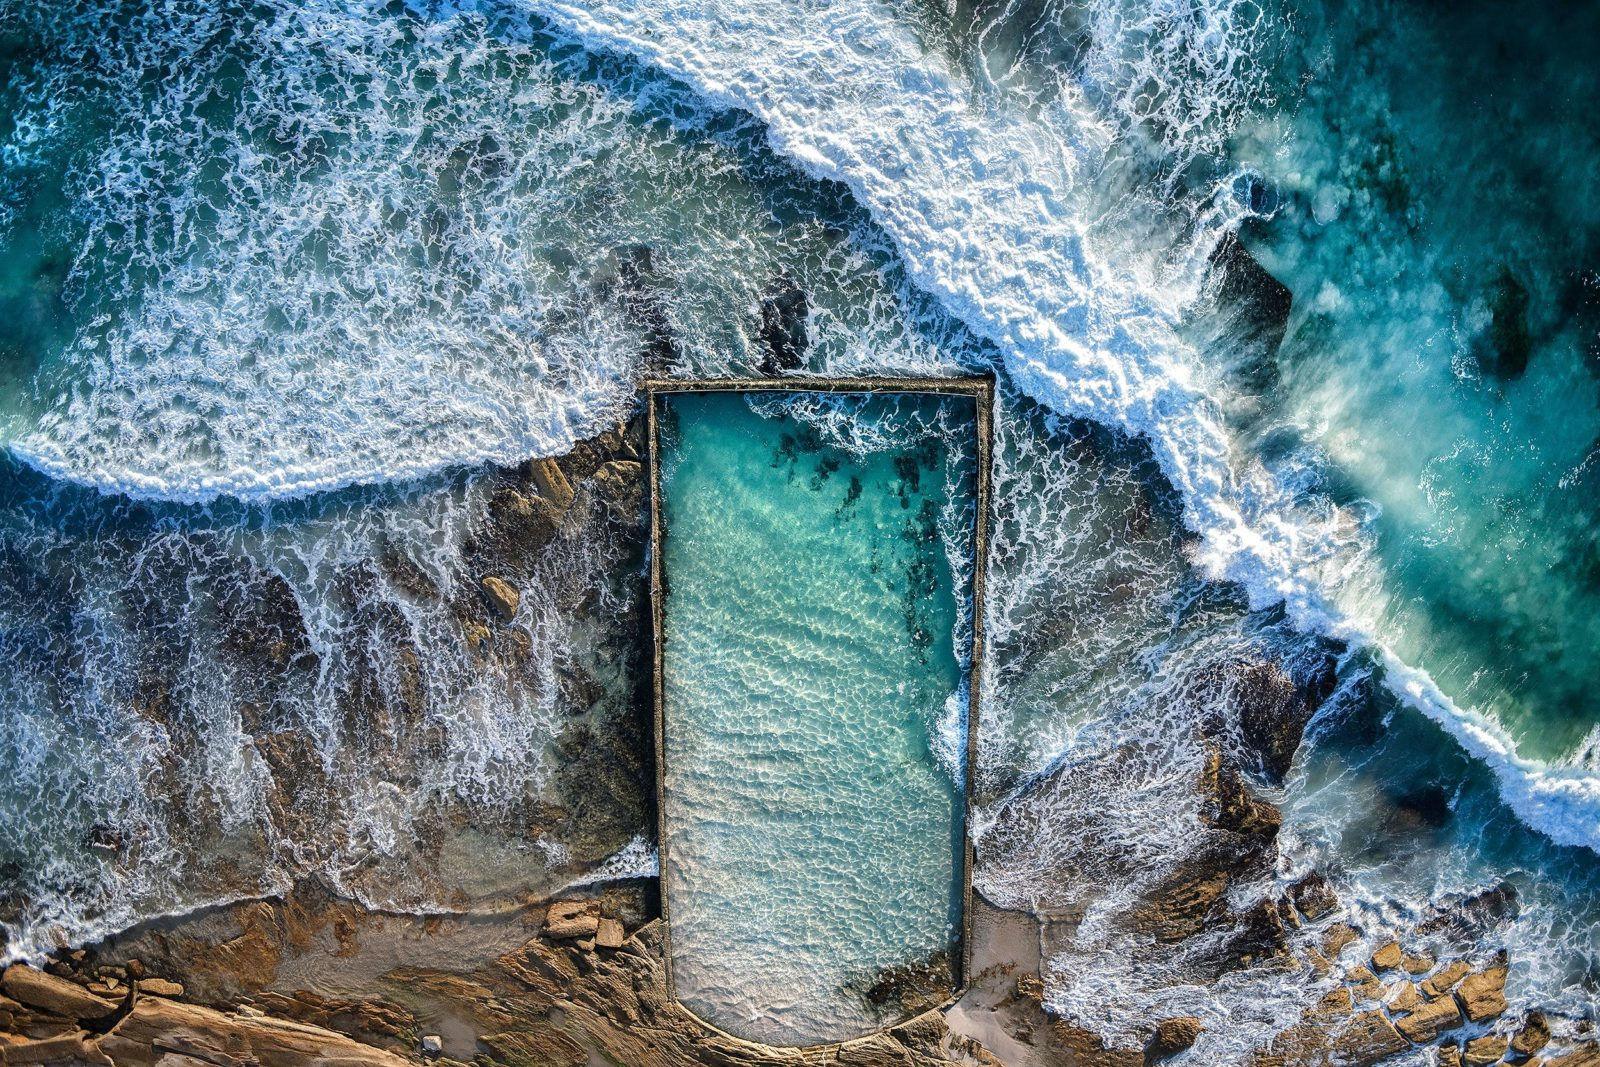 Aerial photograph of Cronulla ocean pool shot from a helicopter.